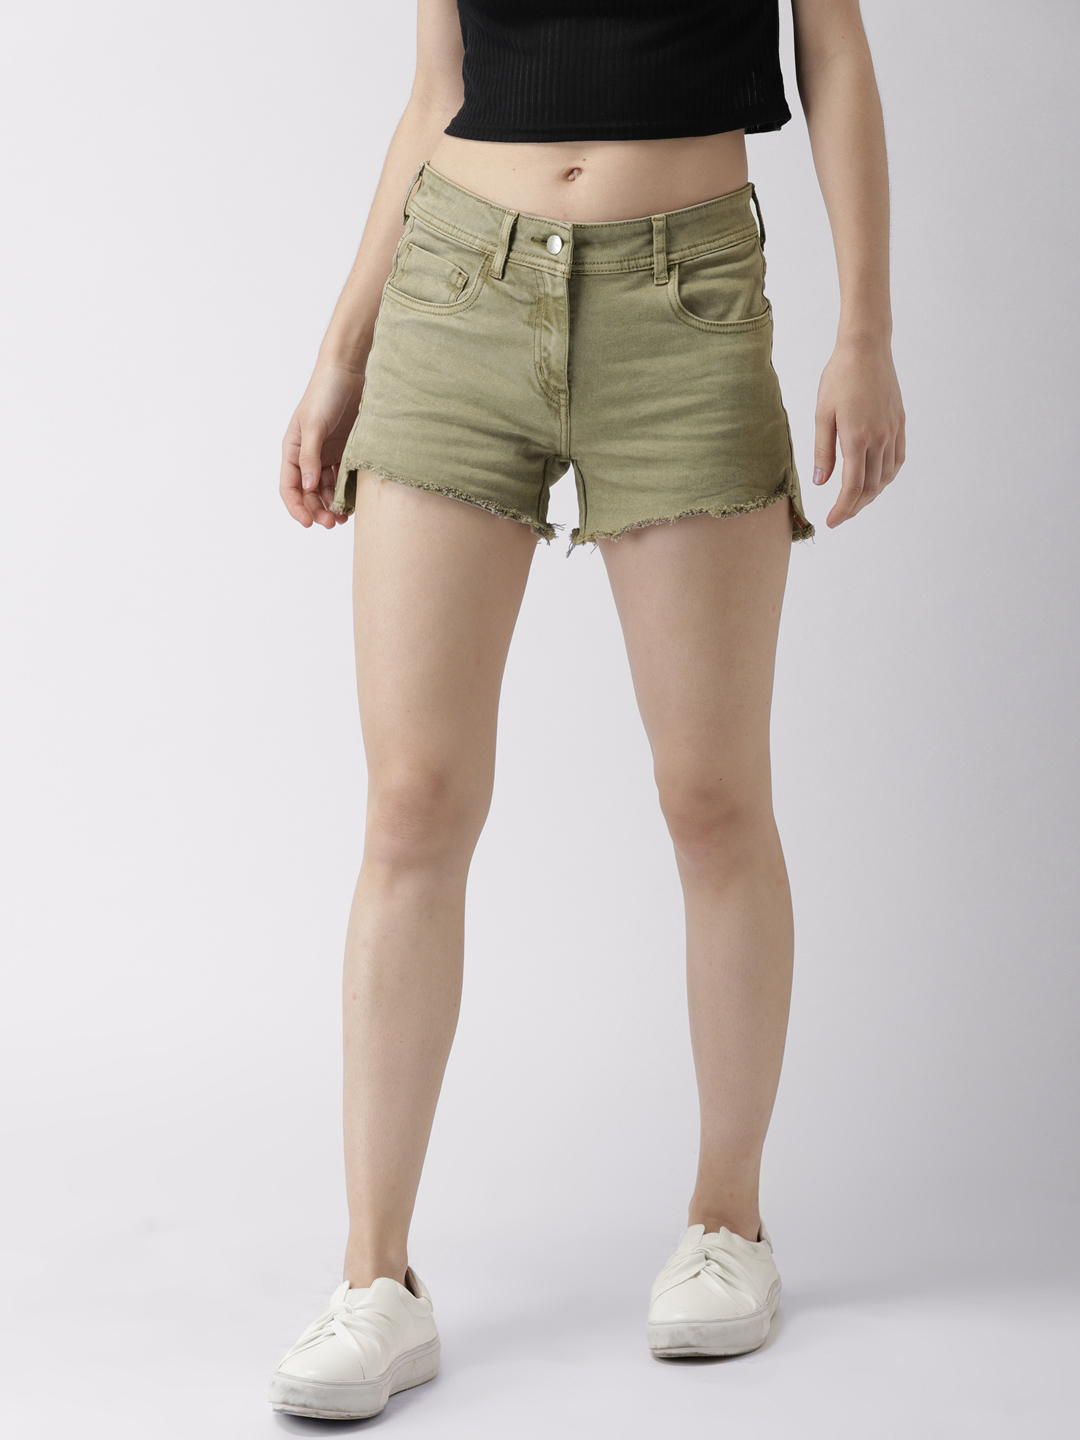 Mast & Harbour Women Grey Solid Regular Fit Denim Shorts Price in India